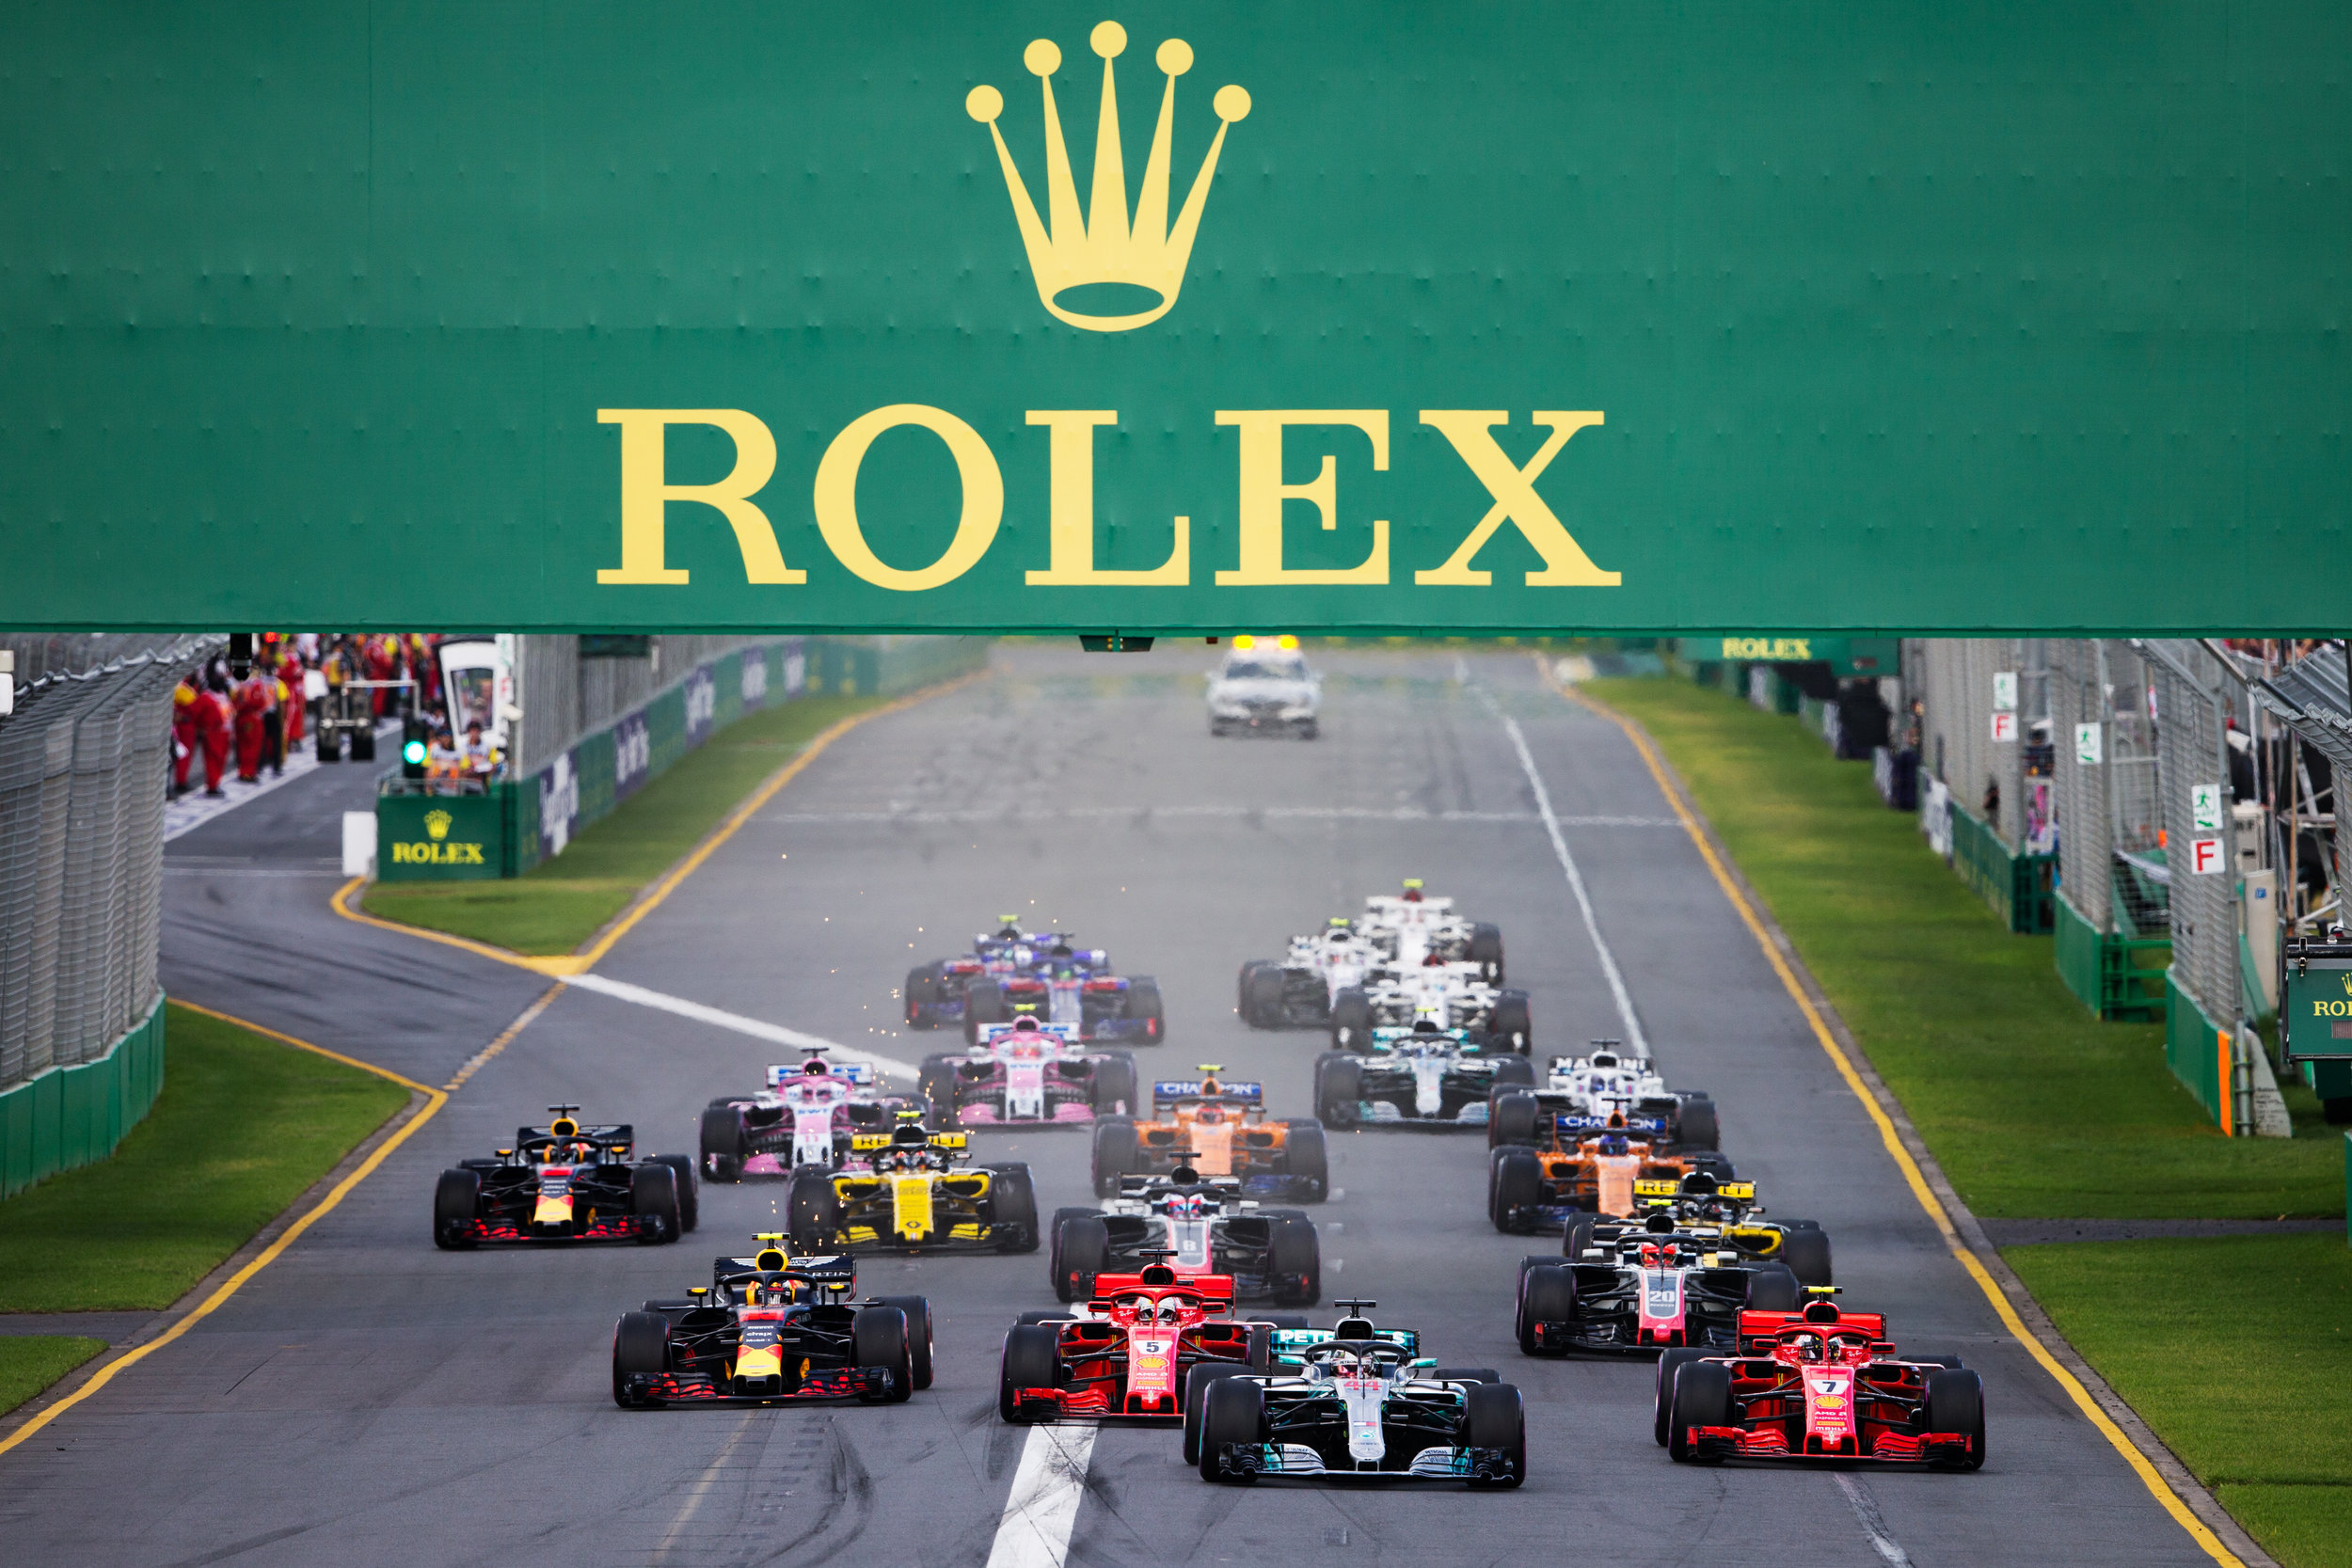 ©Rolex/James Moy THE START OF THE FORMULA 1 2018 ROLEX AUSTRALIAN GRAND PRIX